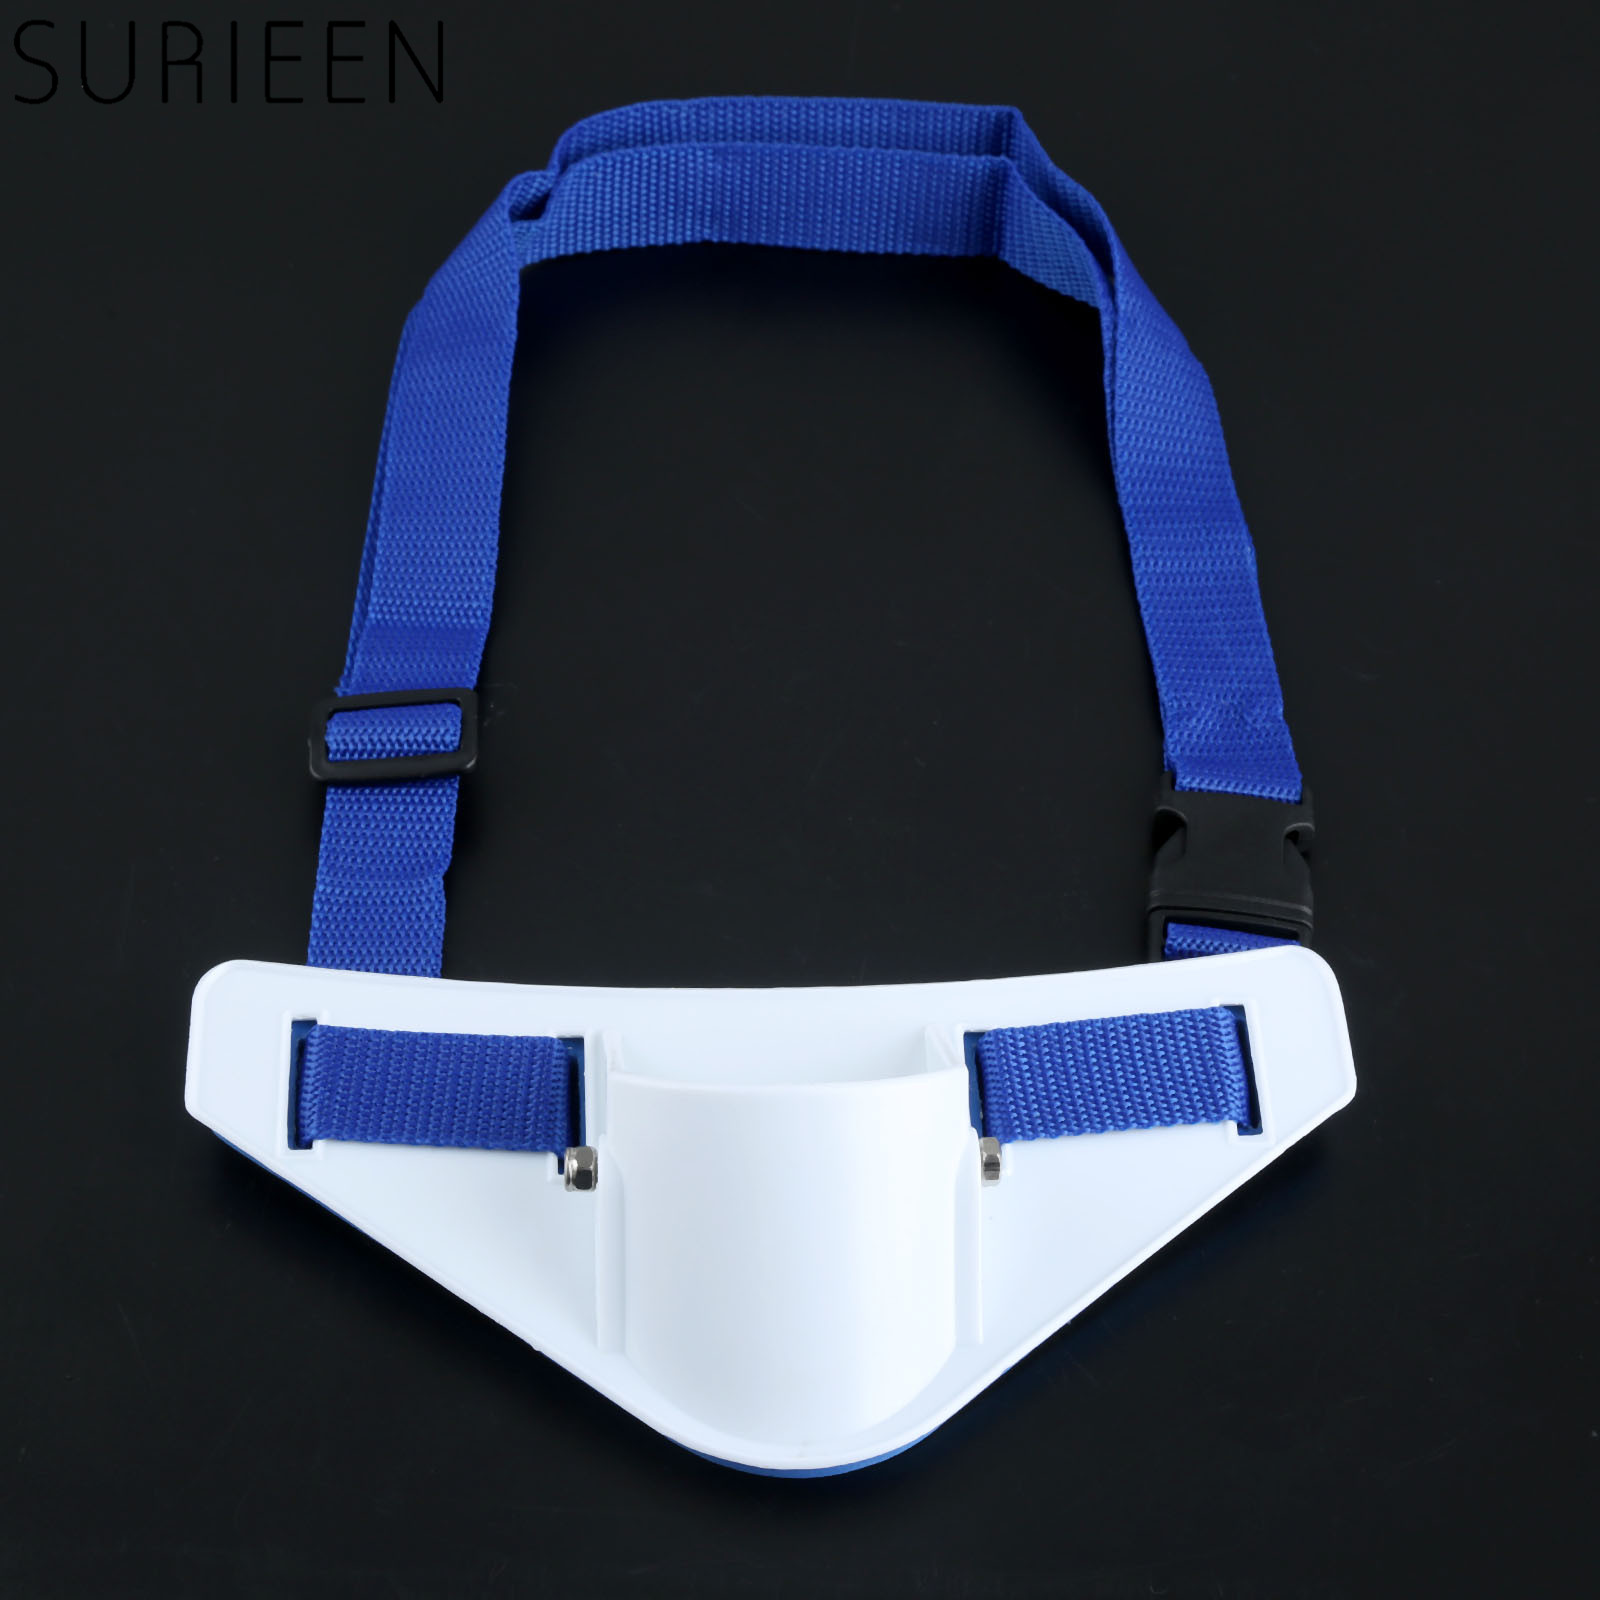 SURIEEN Stand Up Sea Fishing Waist Belt Rod Holder Gimbal Pad Fighting Belt Rod Holder Tackle Fishing Tools Fighting Belts